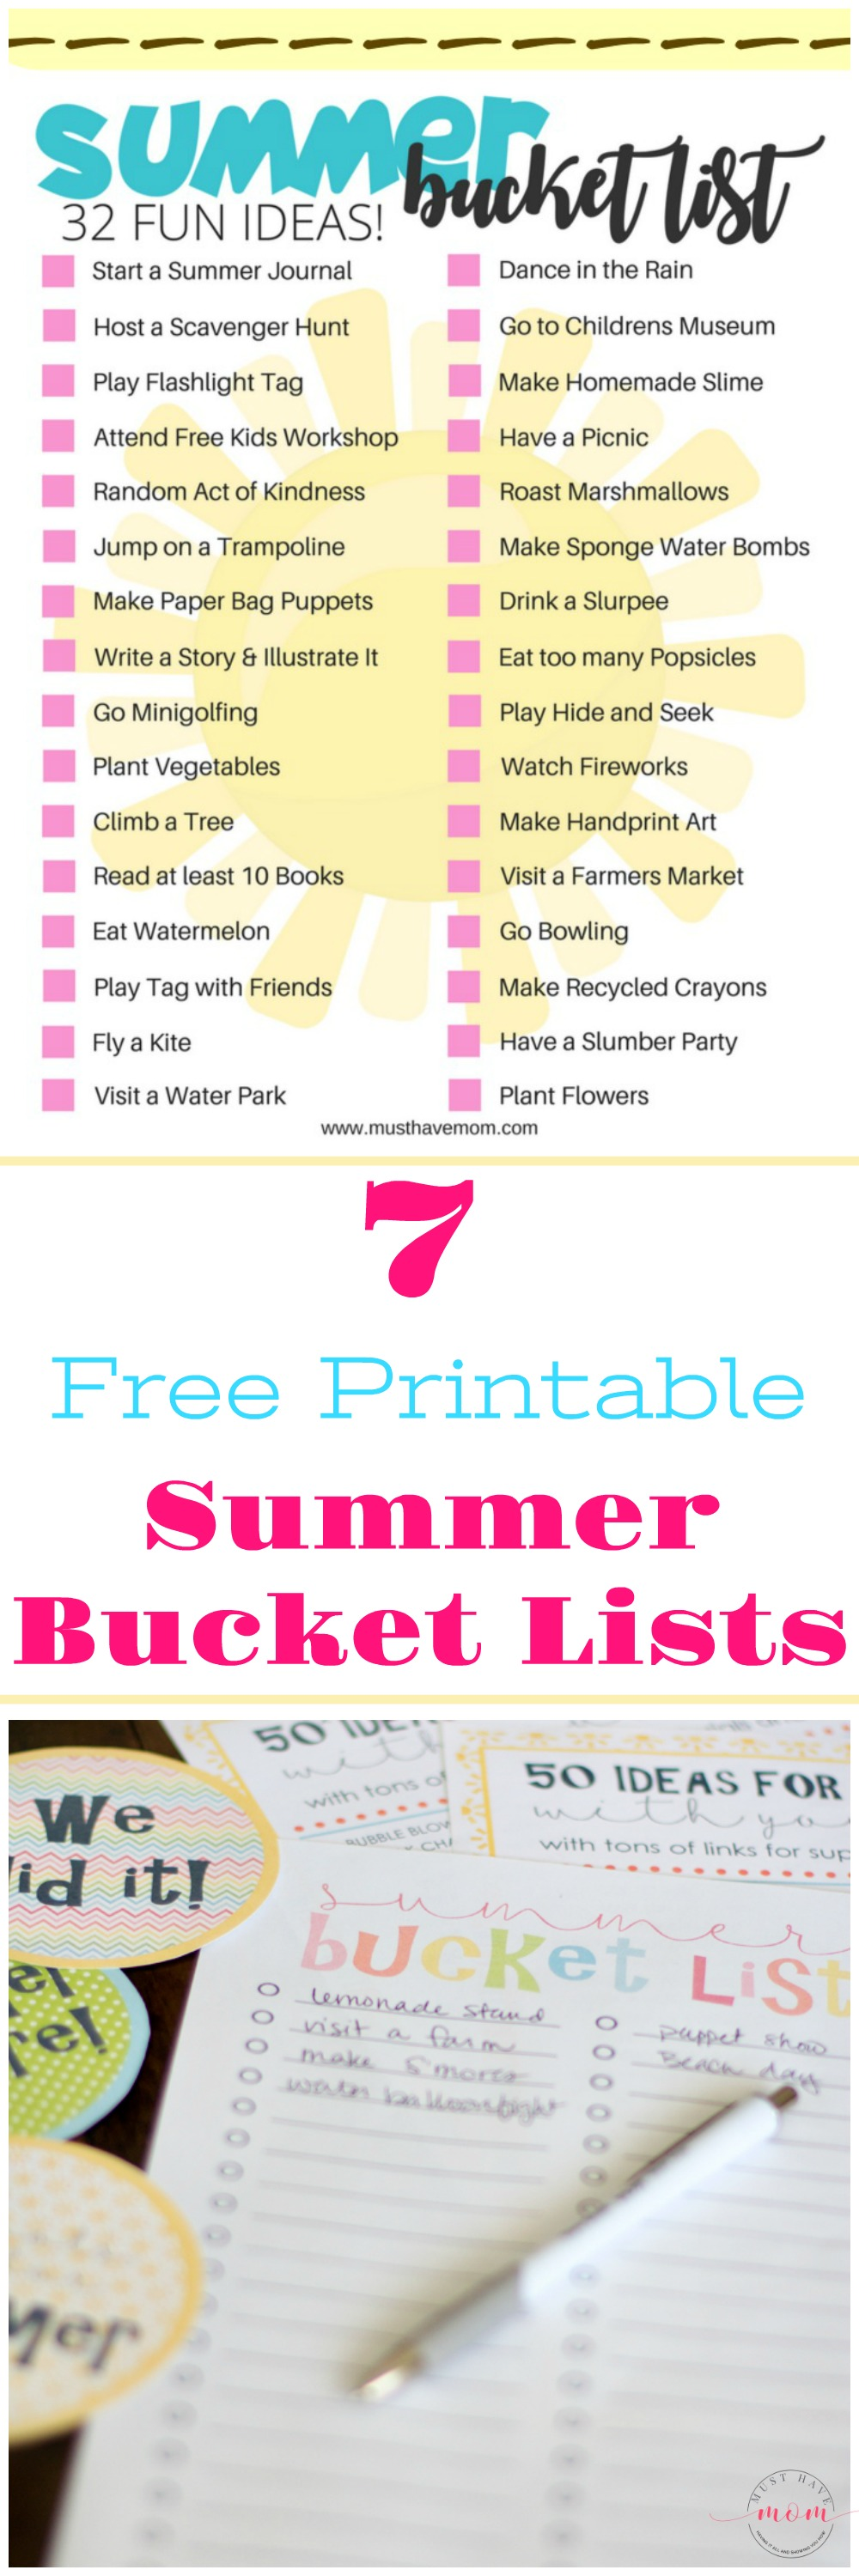 7 Free printable summer bucket lists! Spice up your summer with these fun bucket list ideas for kids and adults.